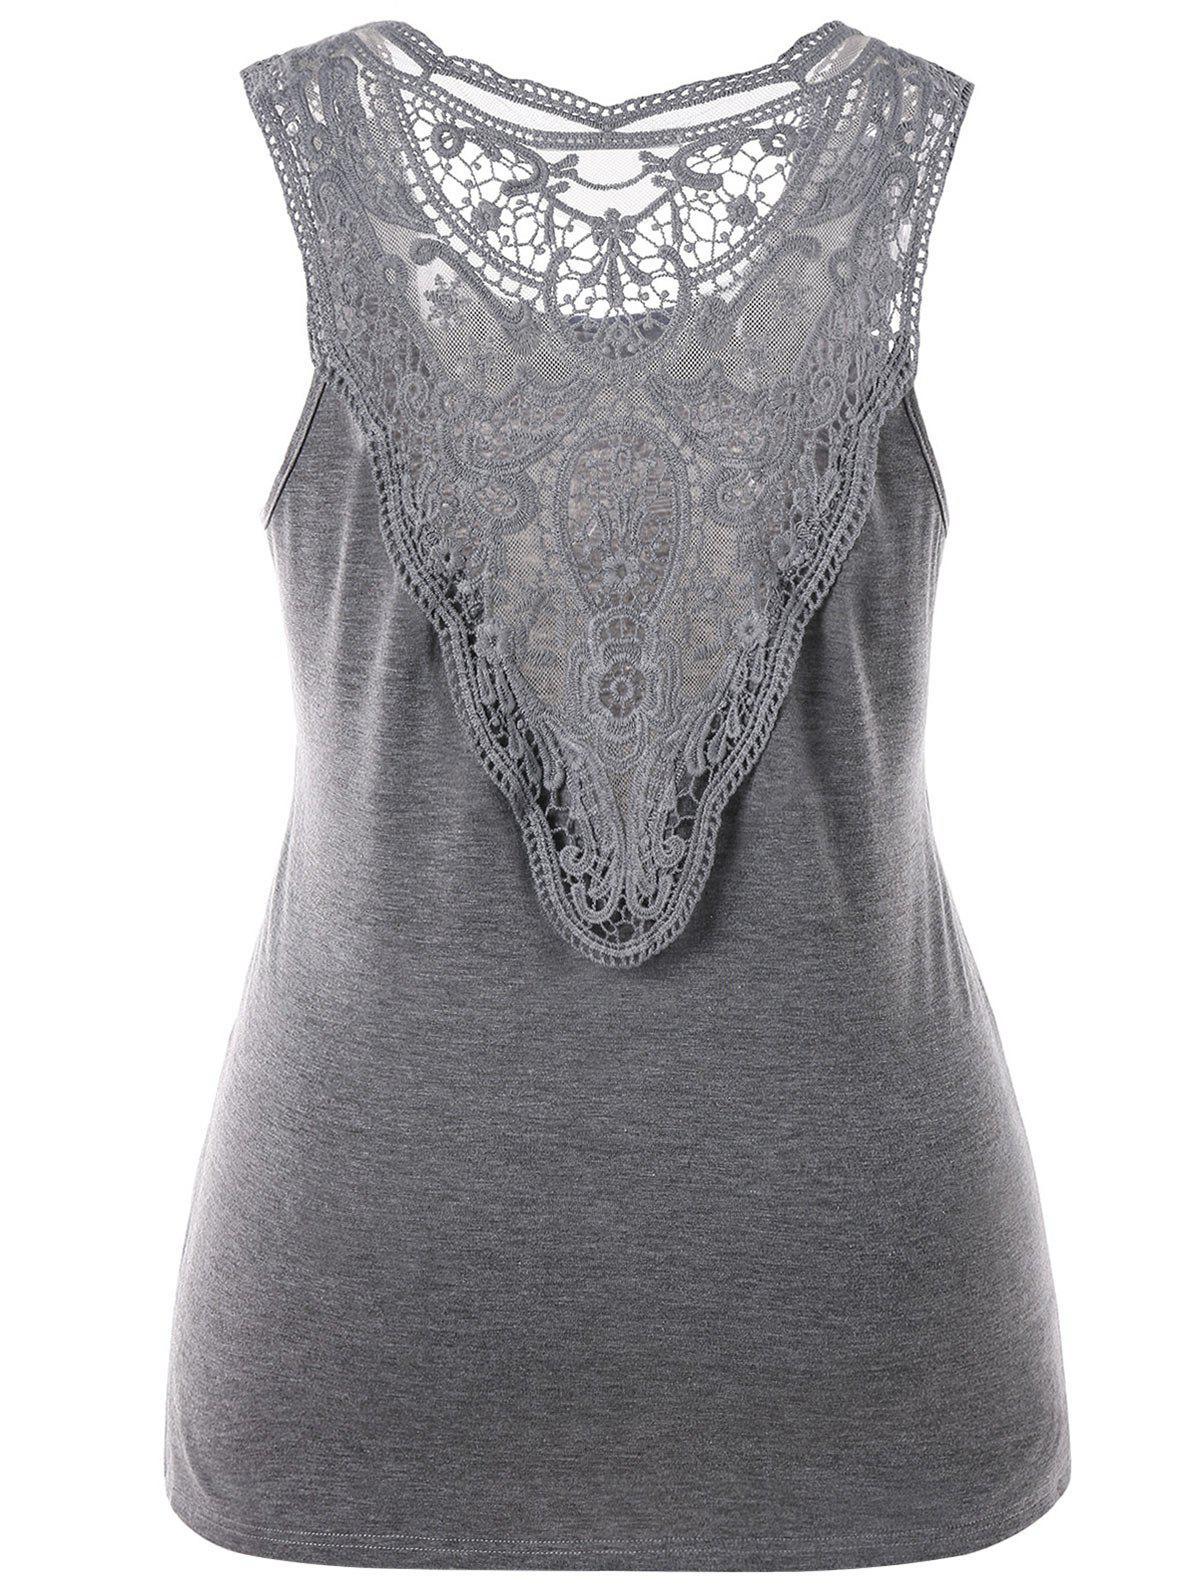 Affordable Plus Size Sleeveless Crochet Lace Top